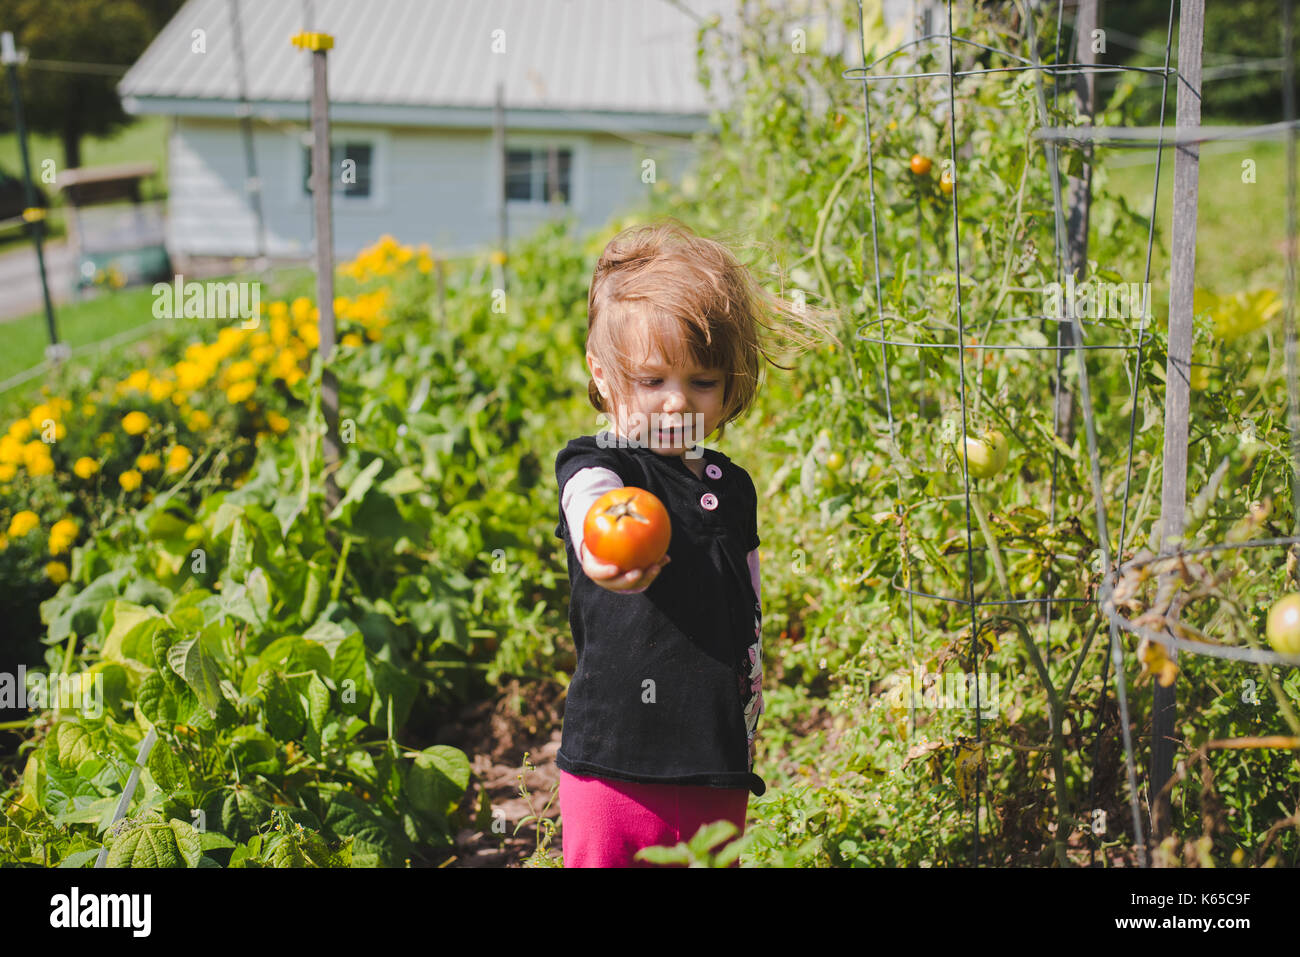 A young girl holds a tomato in her hand after picking it from the gardne. - Stock Image